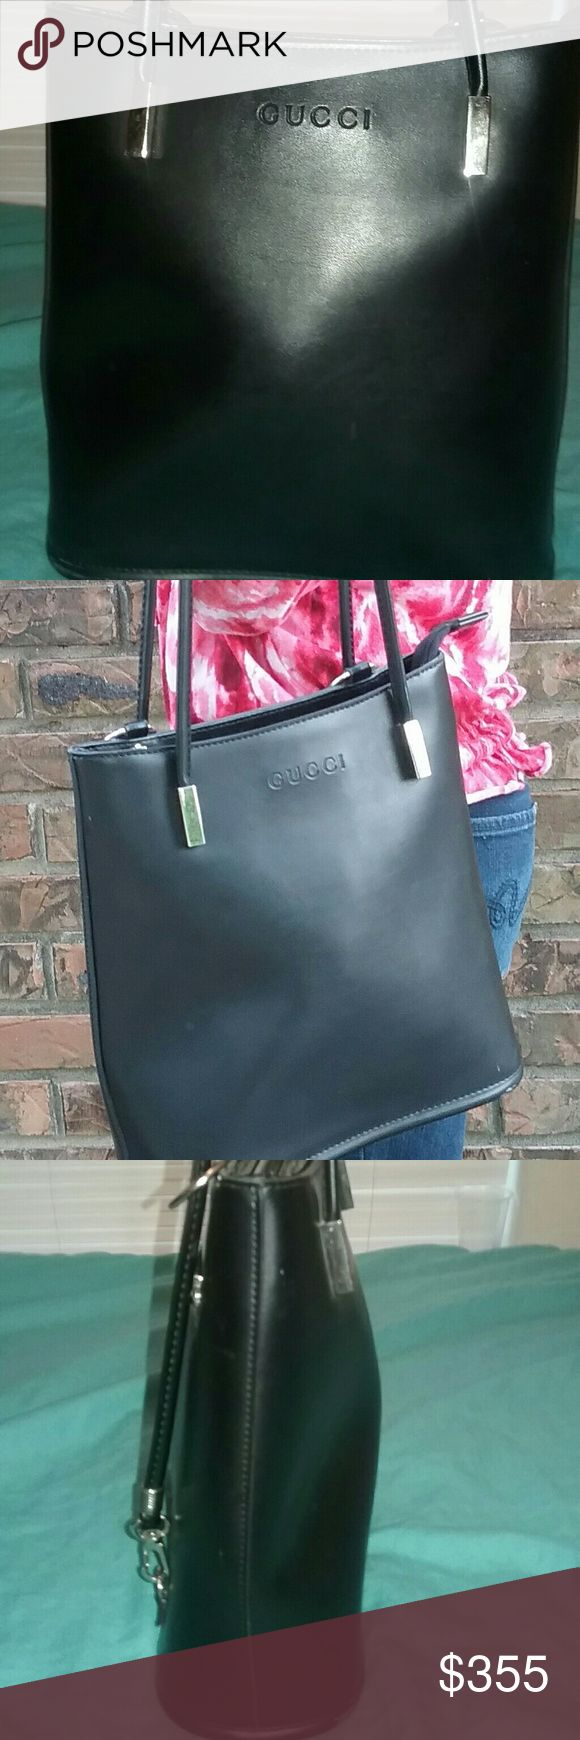 Authentic Gucci designer hand bag This fashionable designer hand bag perfect for any  outfit! Gucci Bags Shoulder Bags